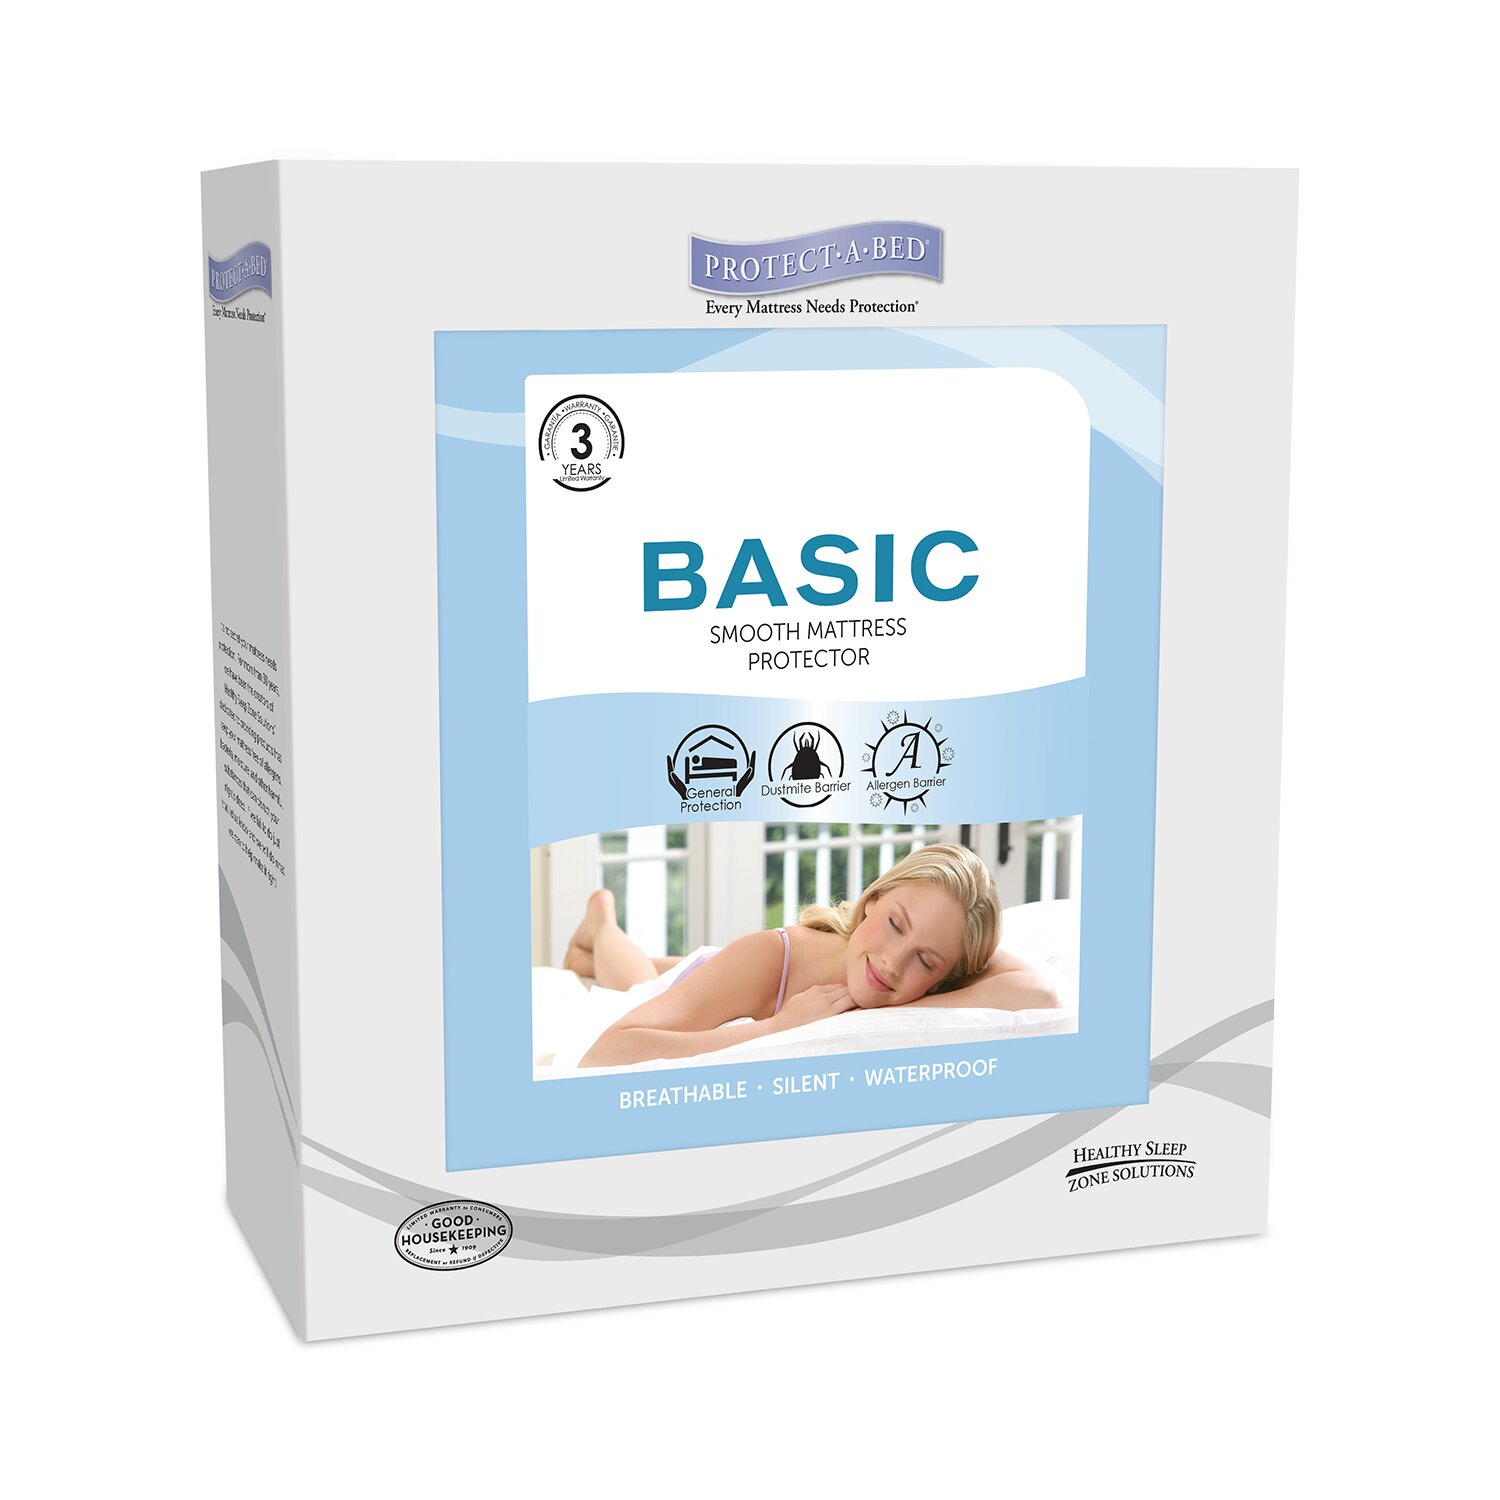 Protect A Bed Basic Fitted Hypoallergenic Waterproof